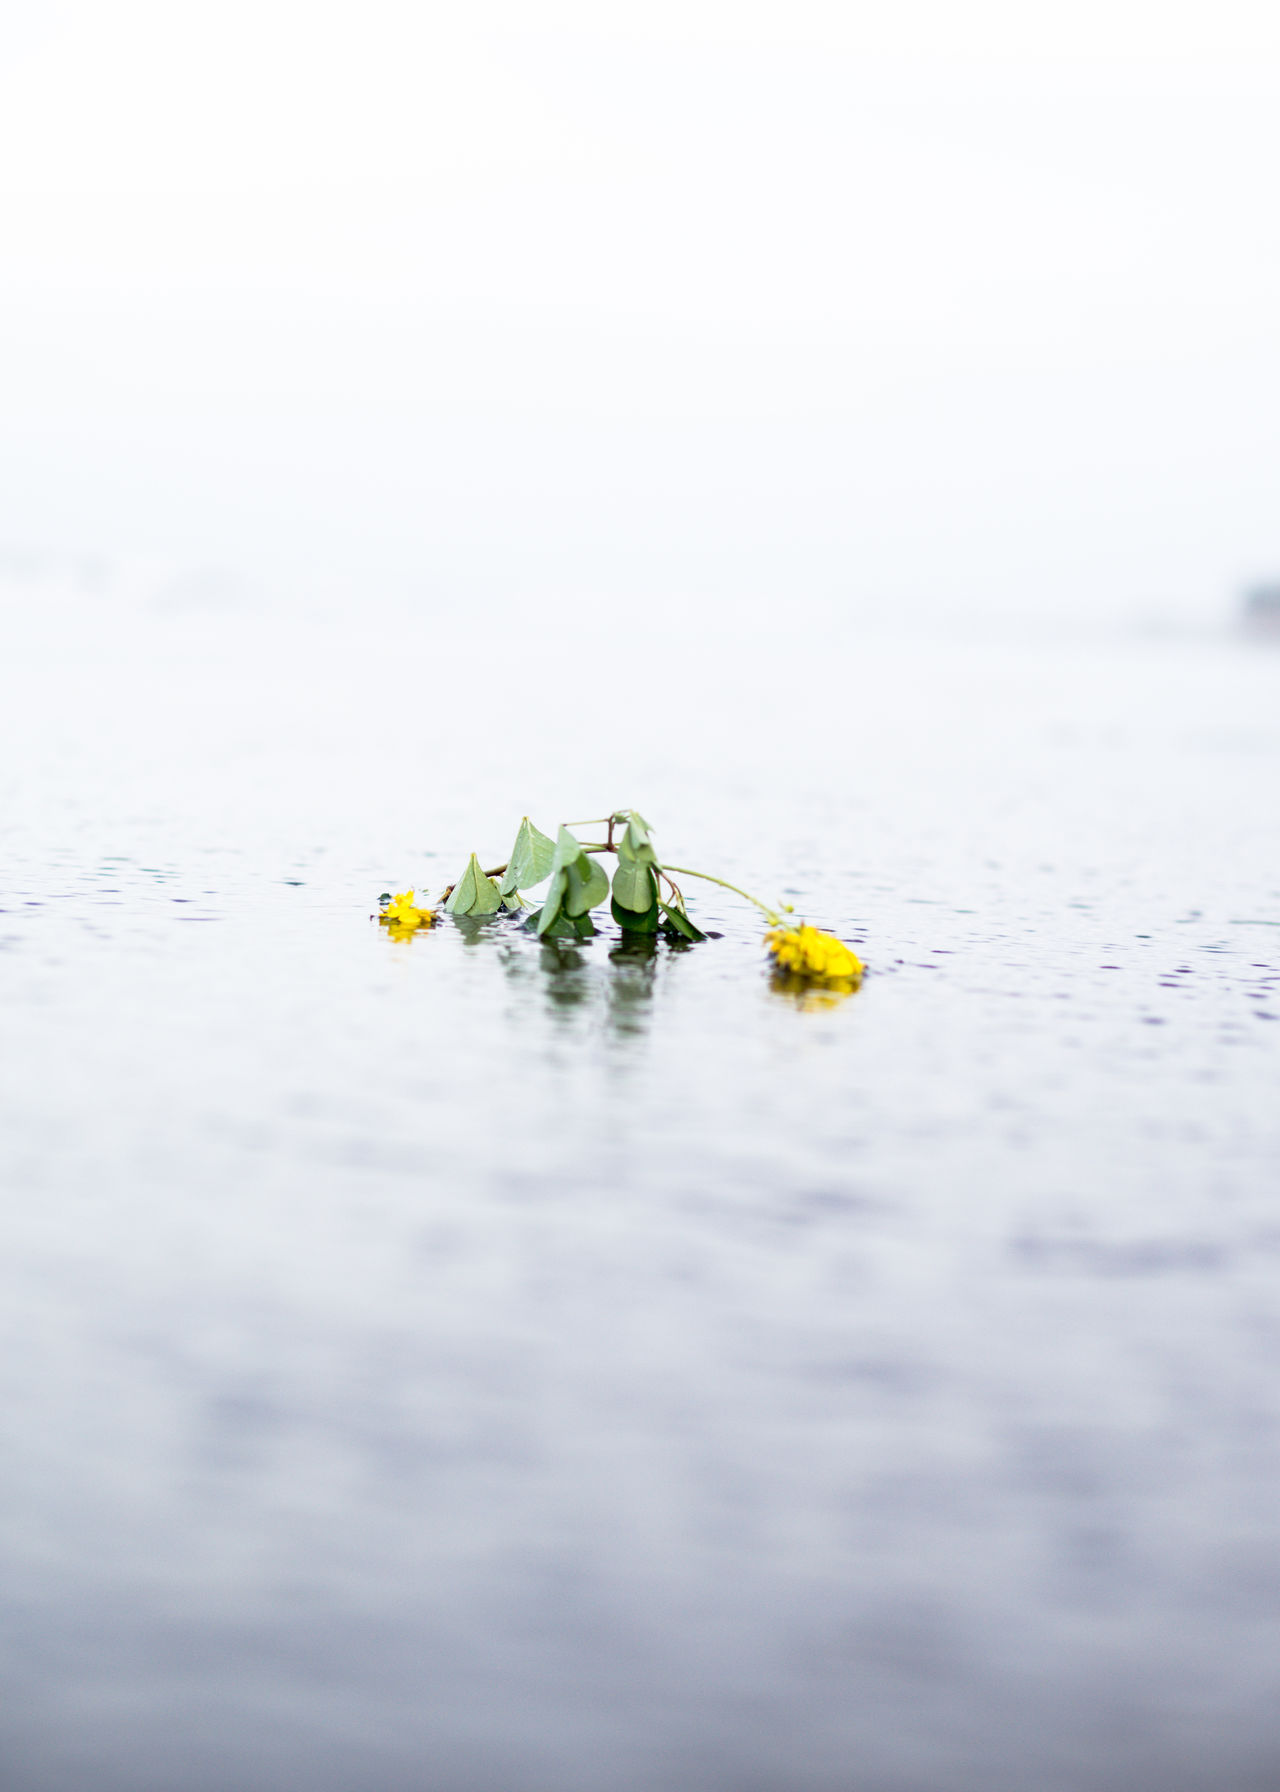 Abstract Photography Animal Themes Animal Wildlife Animals In The Wild Beauty In Nature Close-up Conceptual Photography  Day Fine Art Photography Floating On Water Flower Flowers Fragility Minimal Nature No People One Animal Outdoors Scenics Water Water Reflections Water_collection Yellow